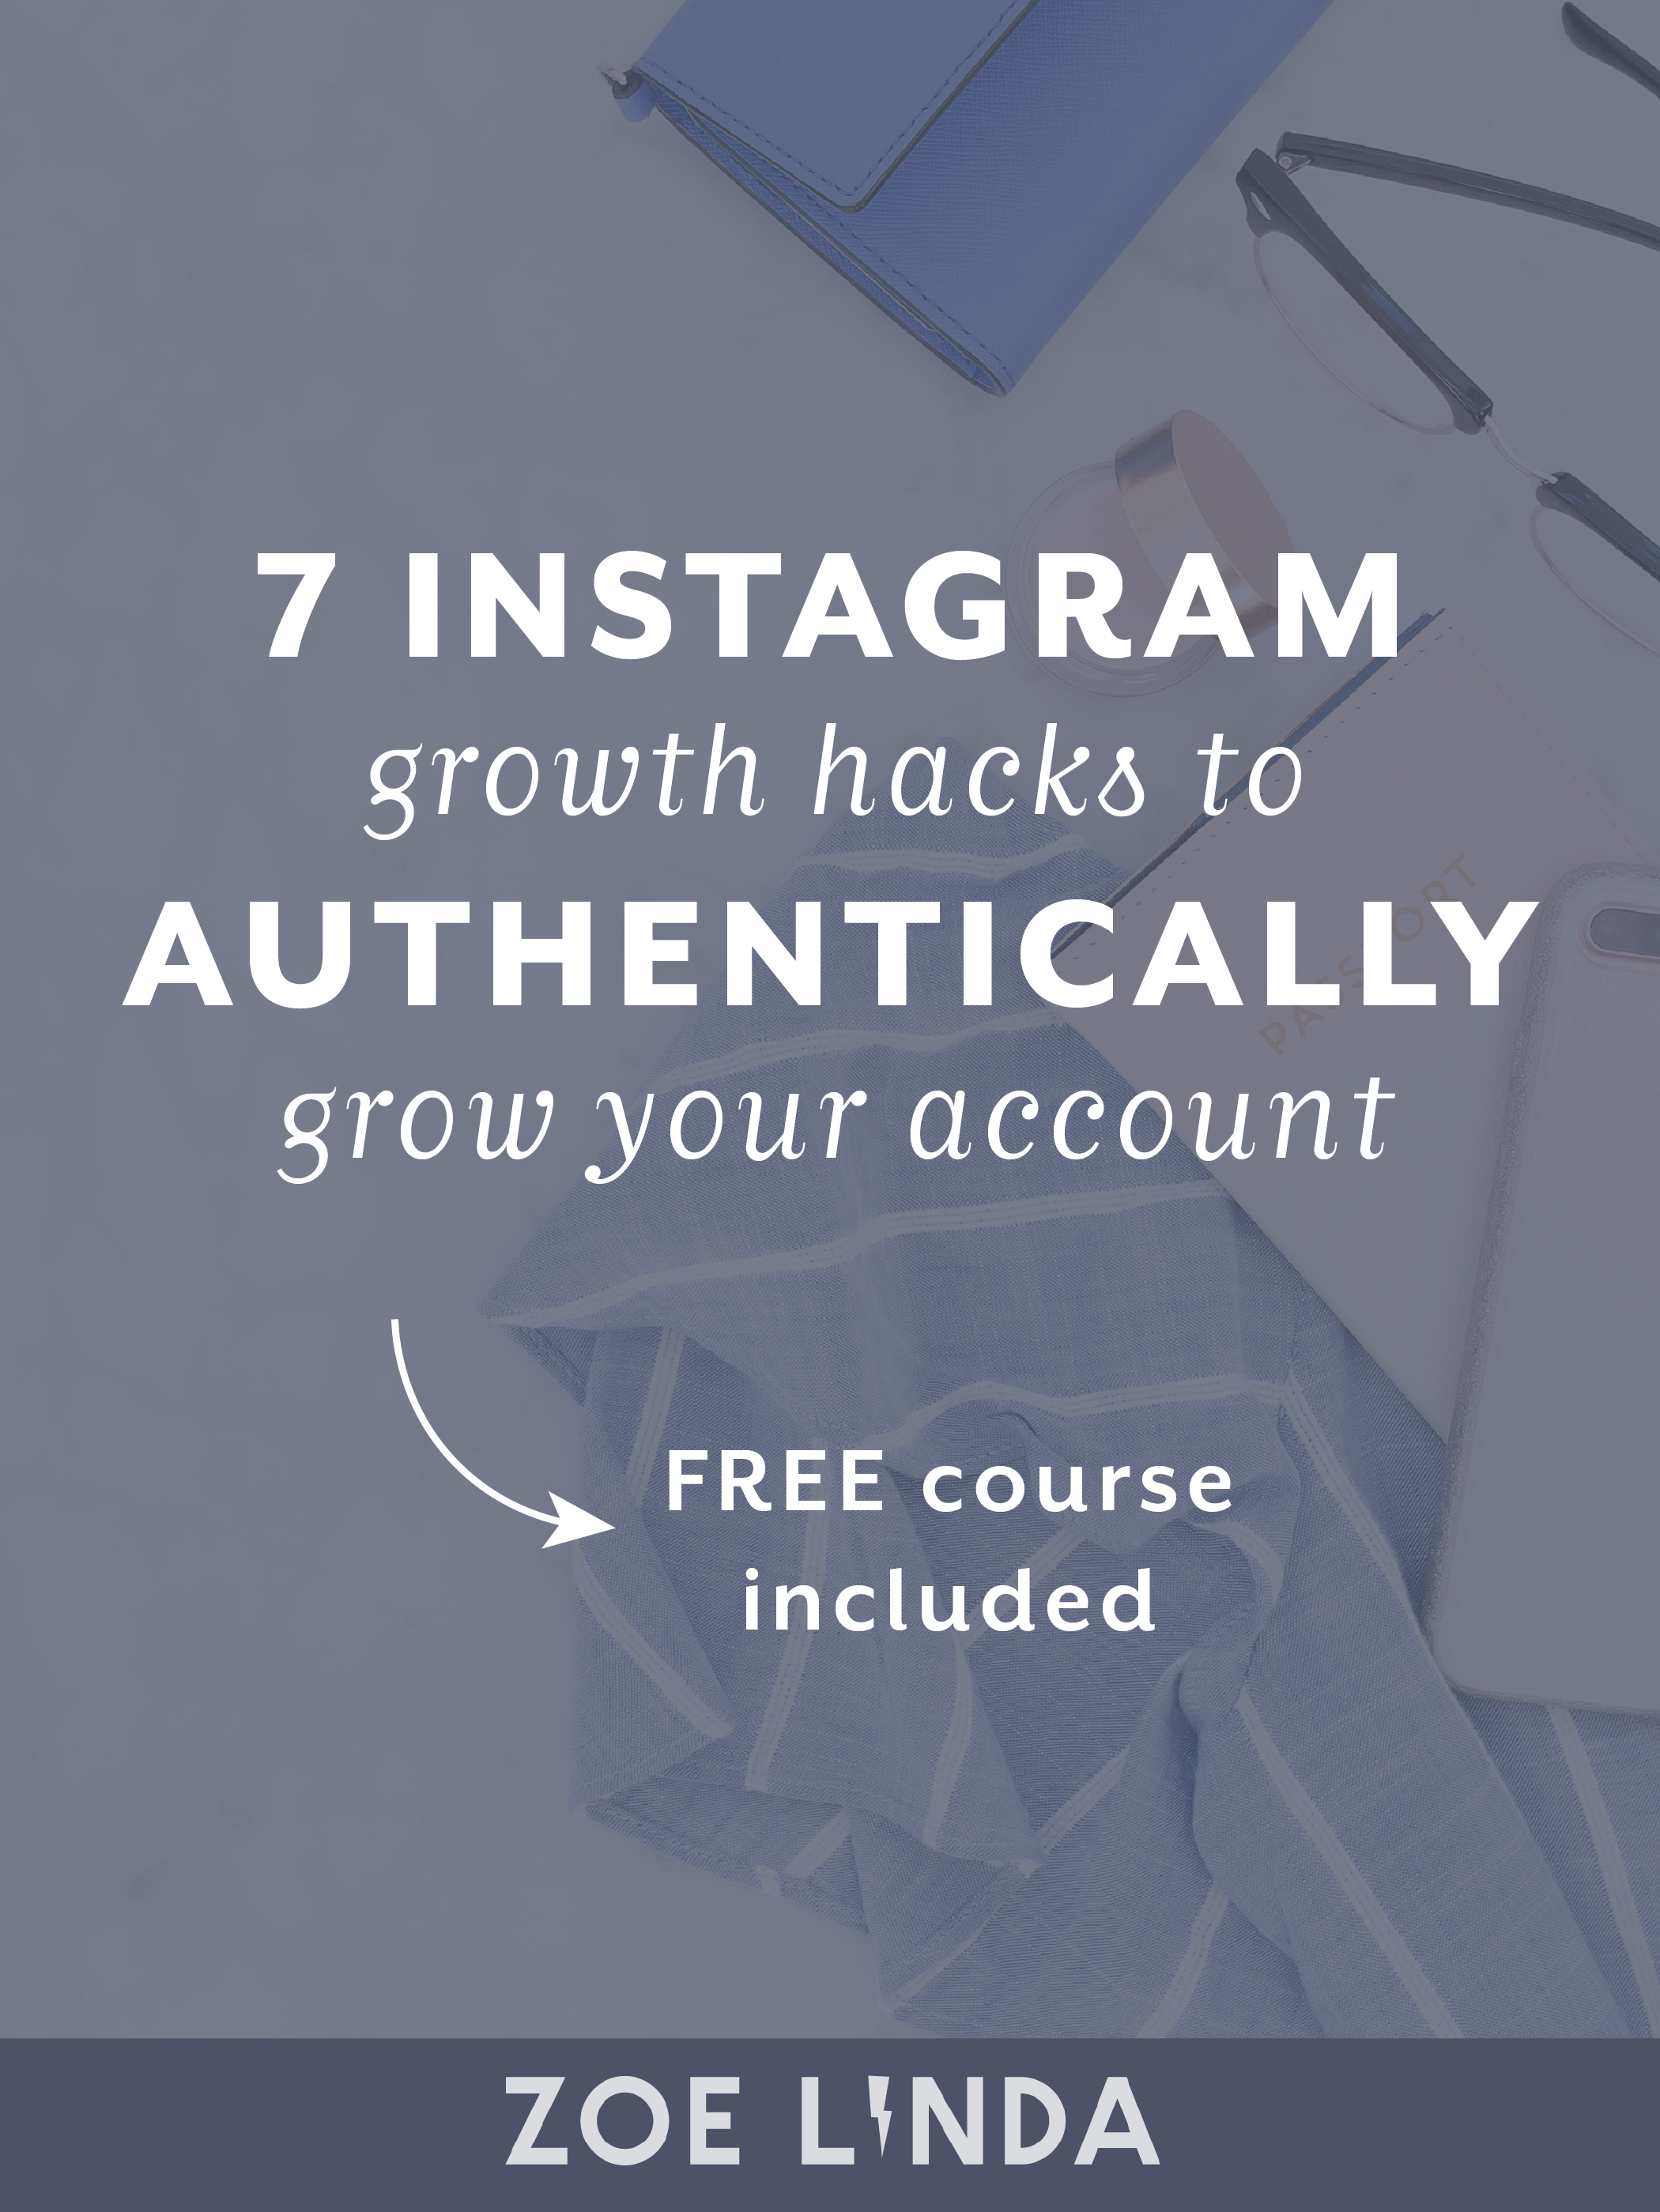 7 Instagram Growth Hacks: How To Authentically Grow Your Following And Engagement On Instagram | Sick of spam comments and the follow/unfollow method on Instagram? You're not the only one! Instead of losing faith in Instagram, there are 7 things you can easily do to help boost your presence and connect with your audience on Instagram. Click here to read my guide and grab your FREE course! Perfect for bloggers, creative entrepreneurs, and small business owners!